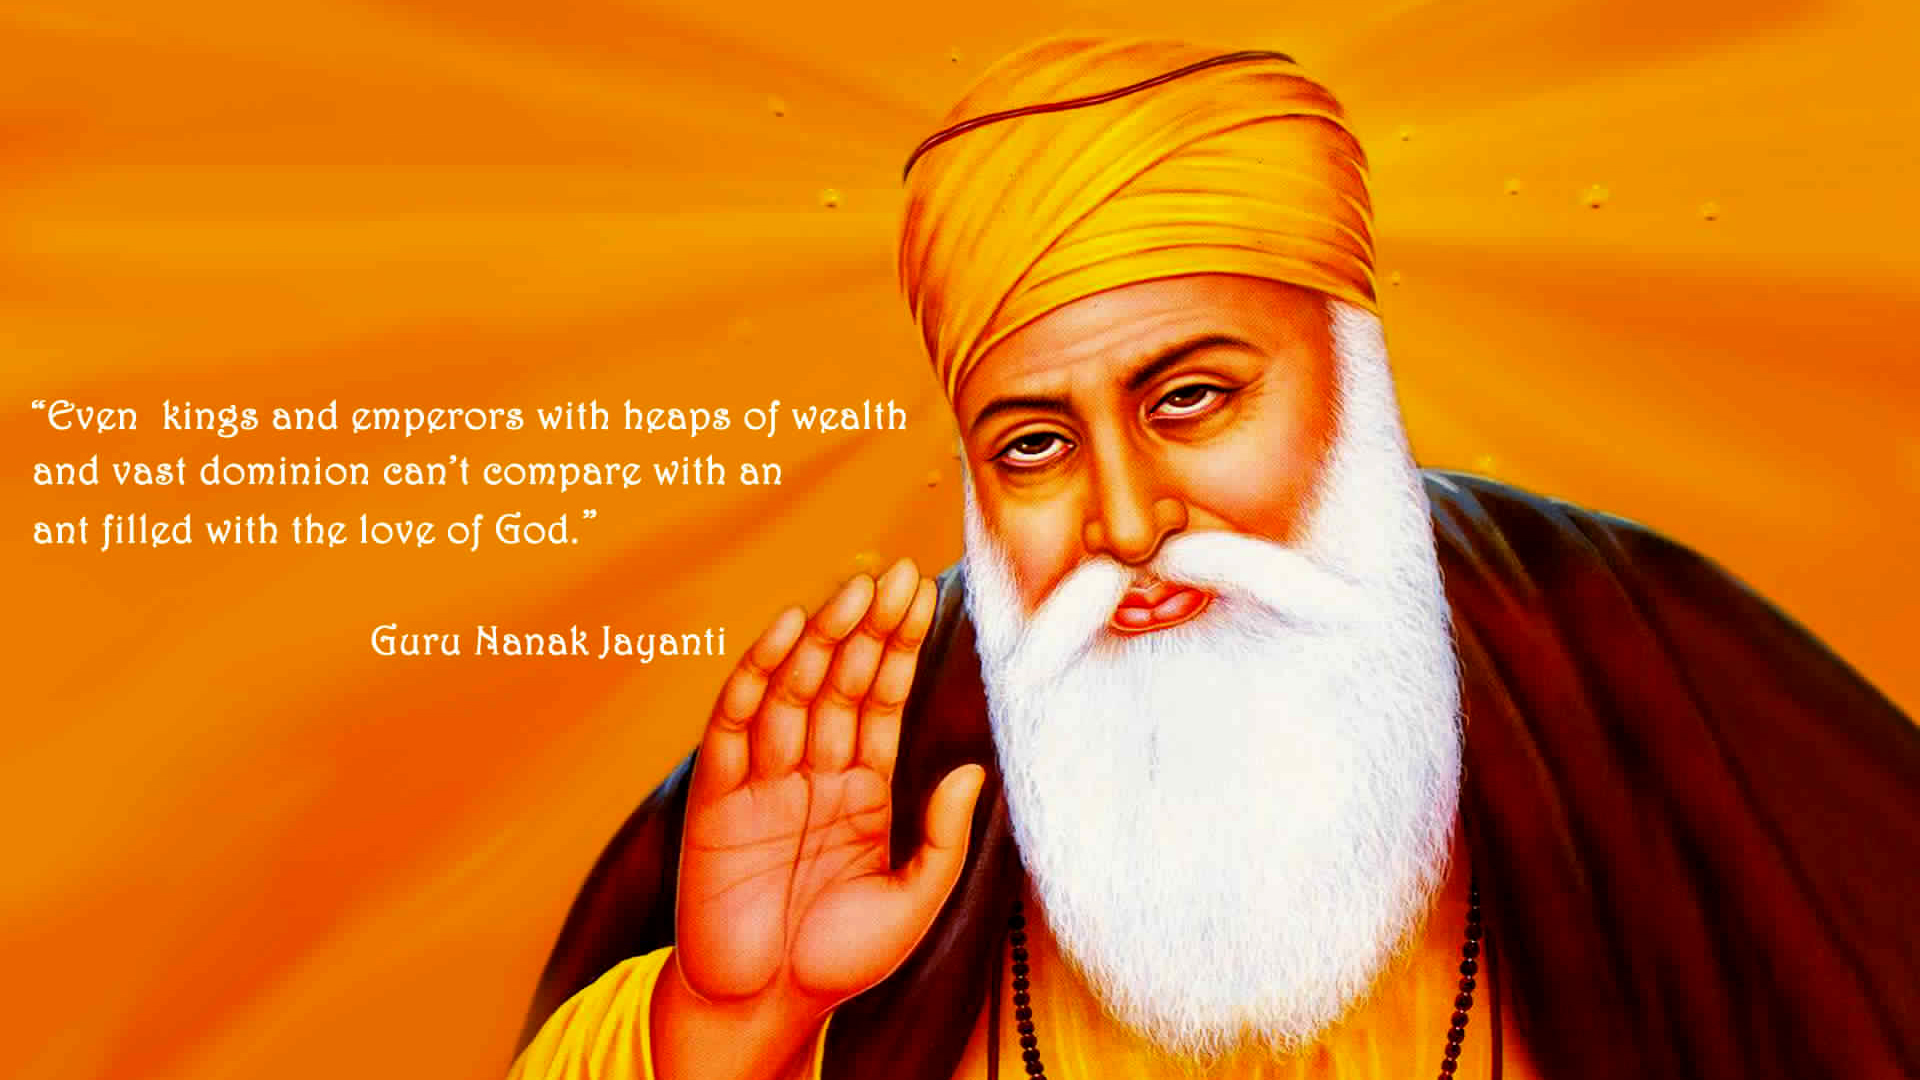 Inspirational Guru Nanak quotes in English